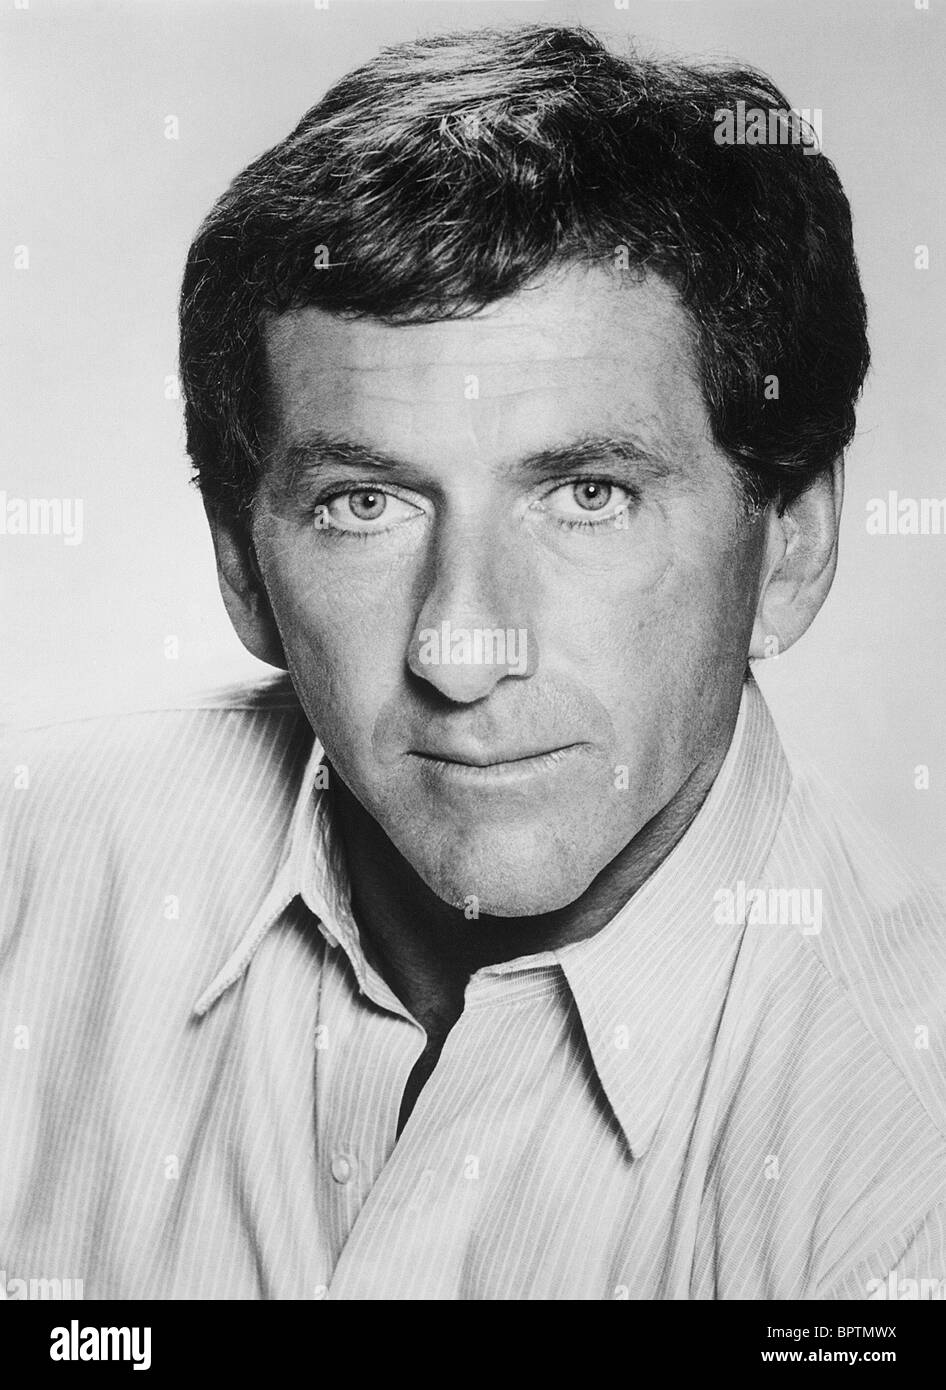 BARRY NEWMAN ACTOR (1982) - Stock Image